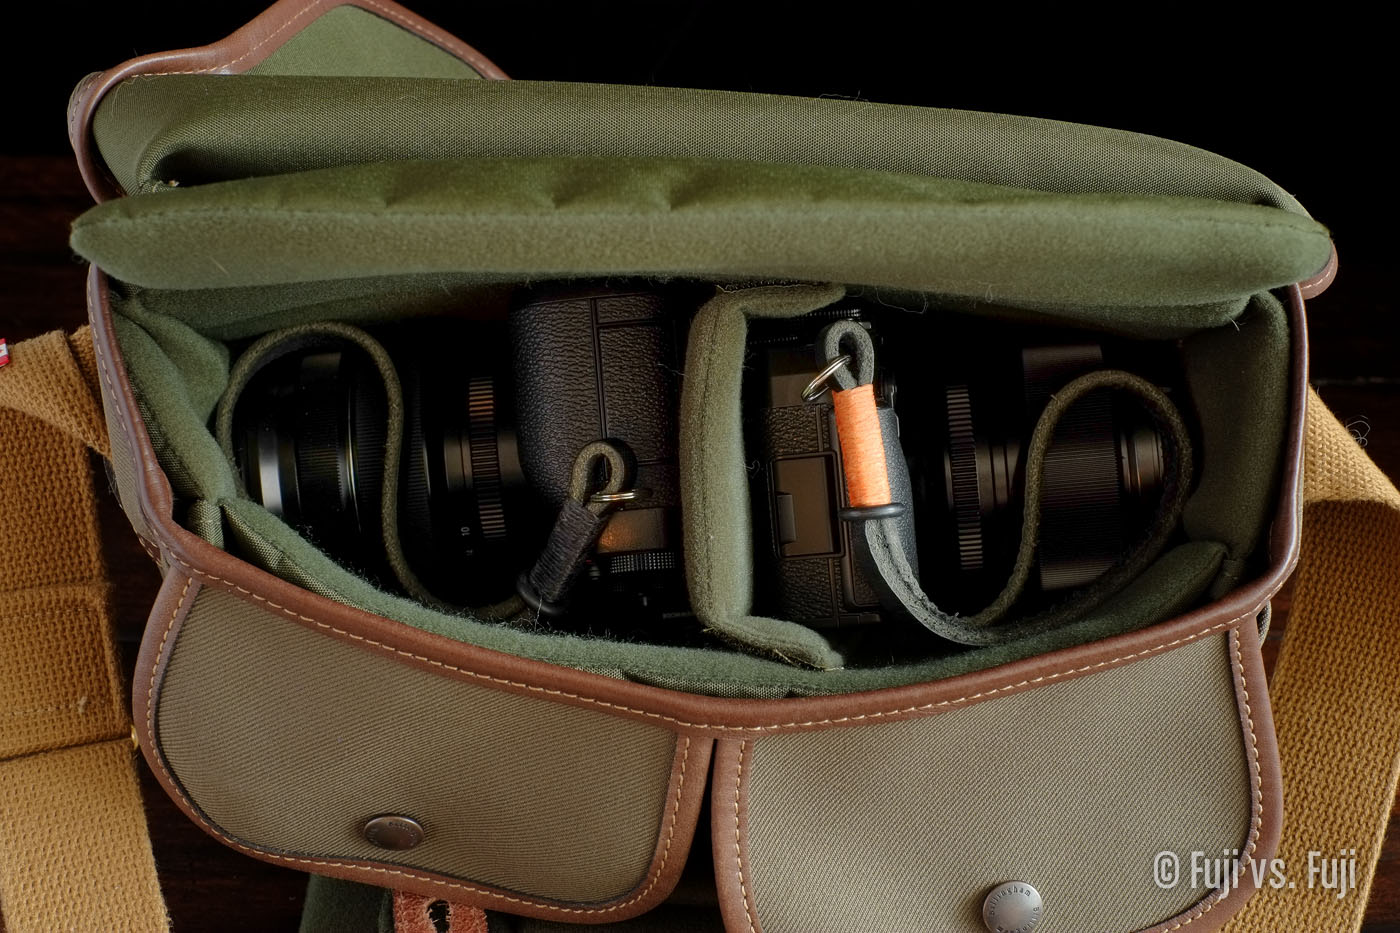 Two cameras easily fit in the Hadley small